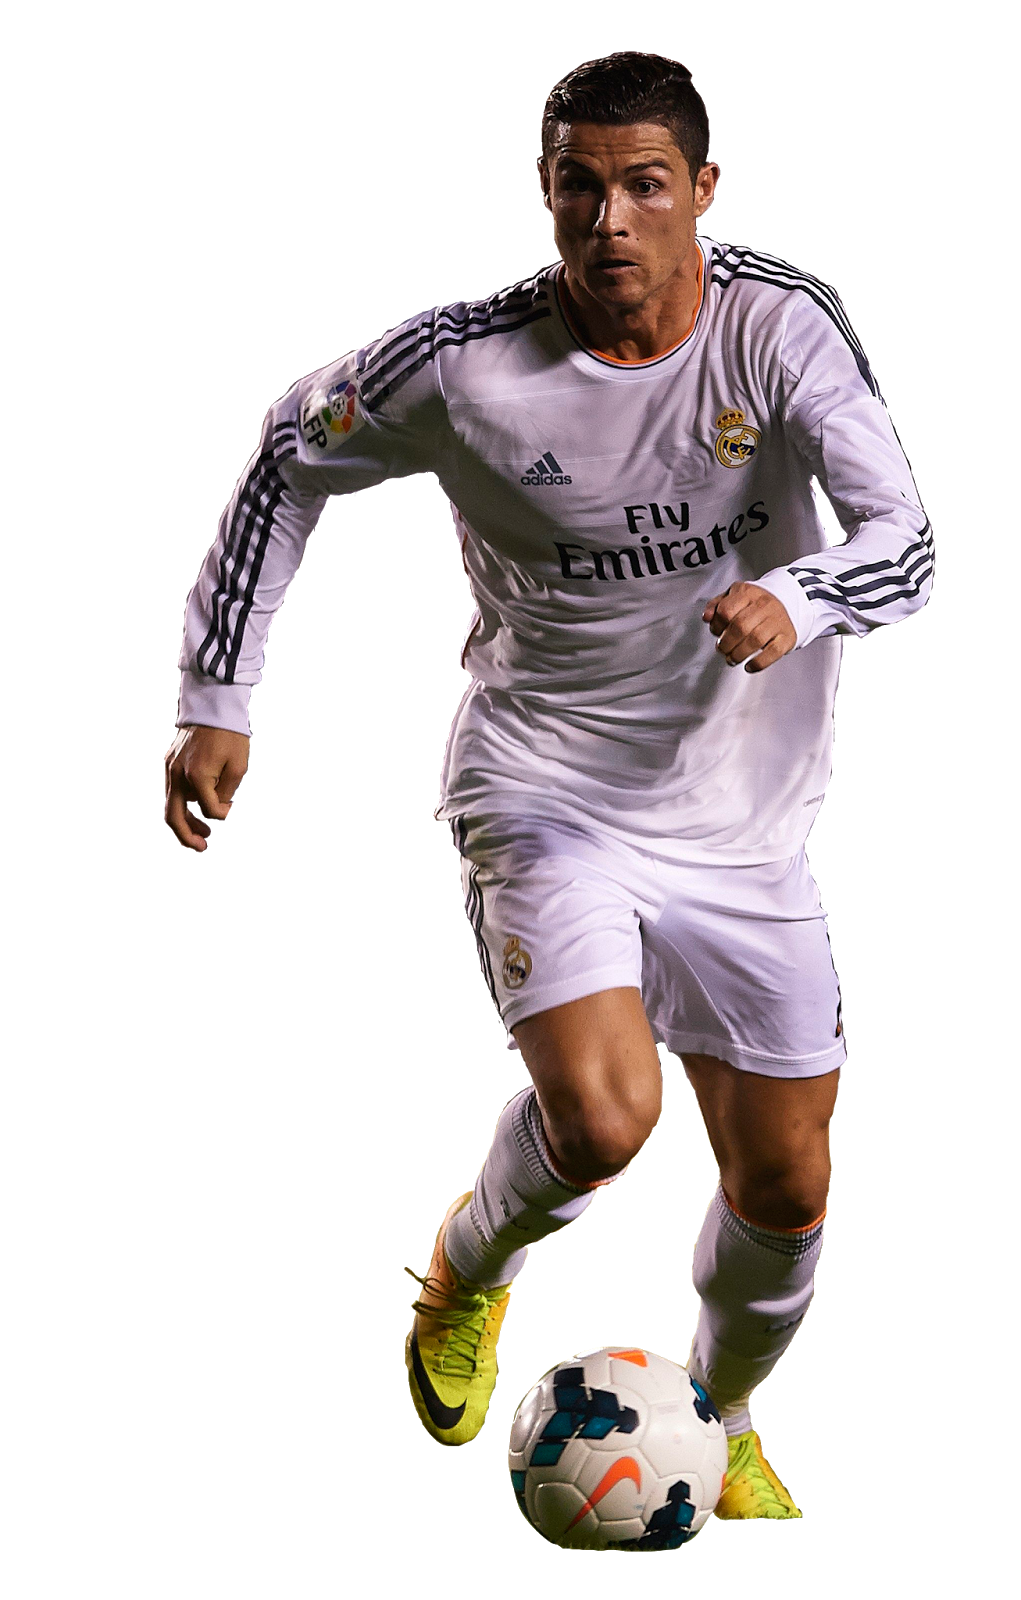 Download Real Fifa Cristiano Portugal Cup Madrid Ronaldo.